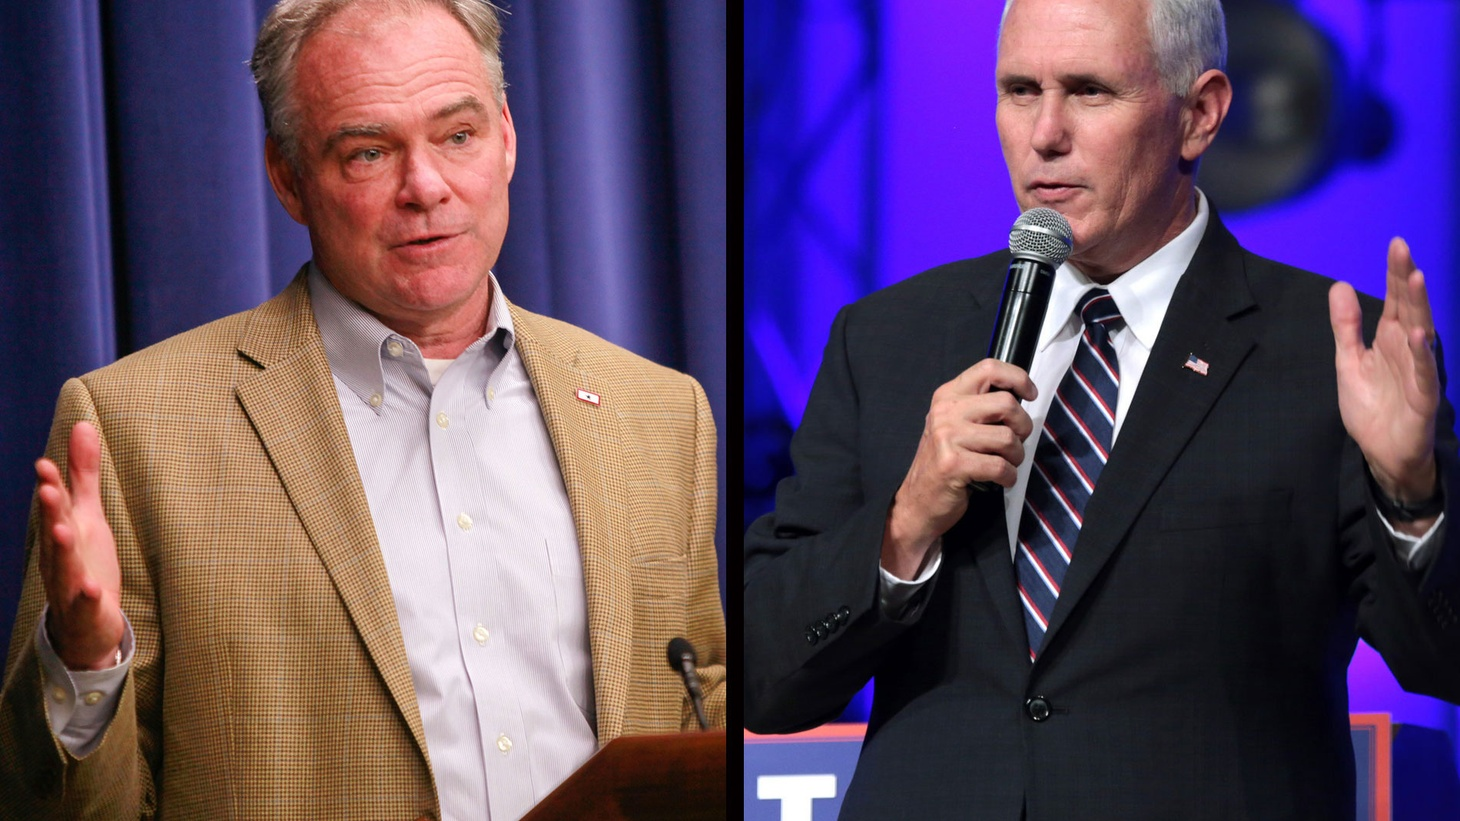 NPR News' live, anchored special coverage and analysis of the vice presidential debate, Tuesday, October 4 from 6-8pm.